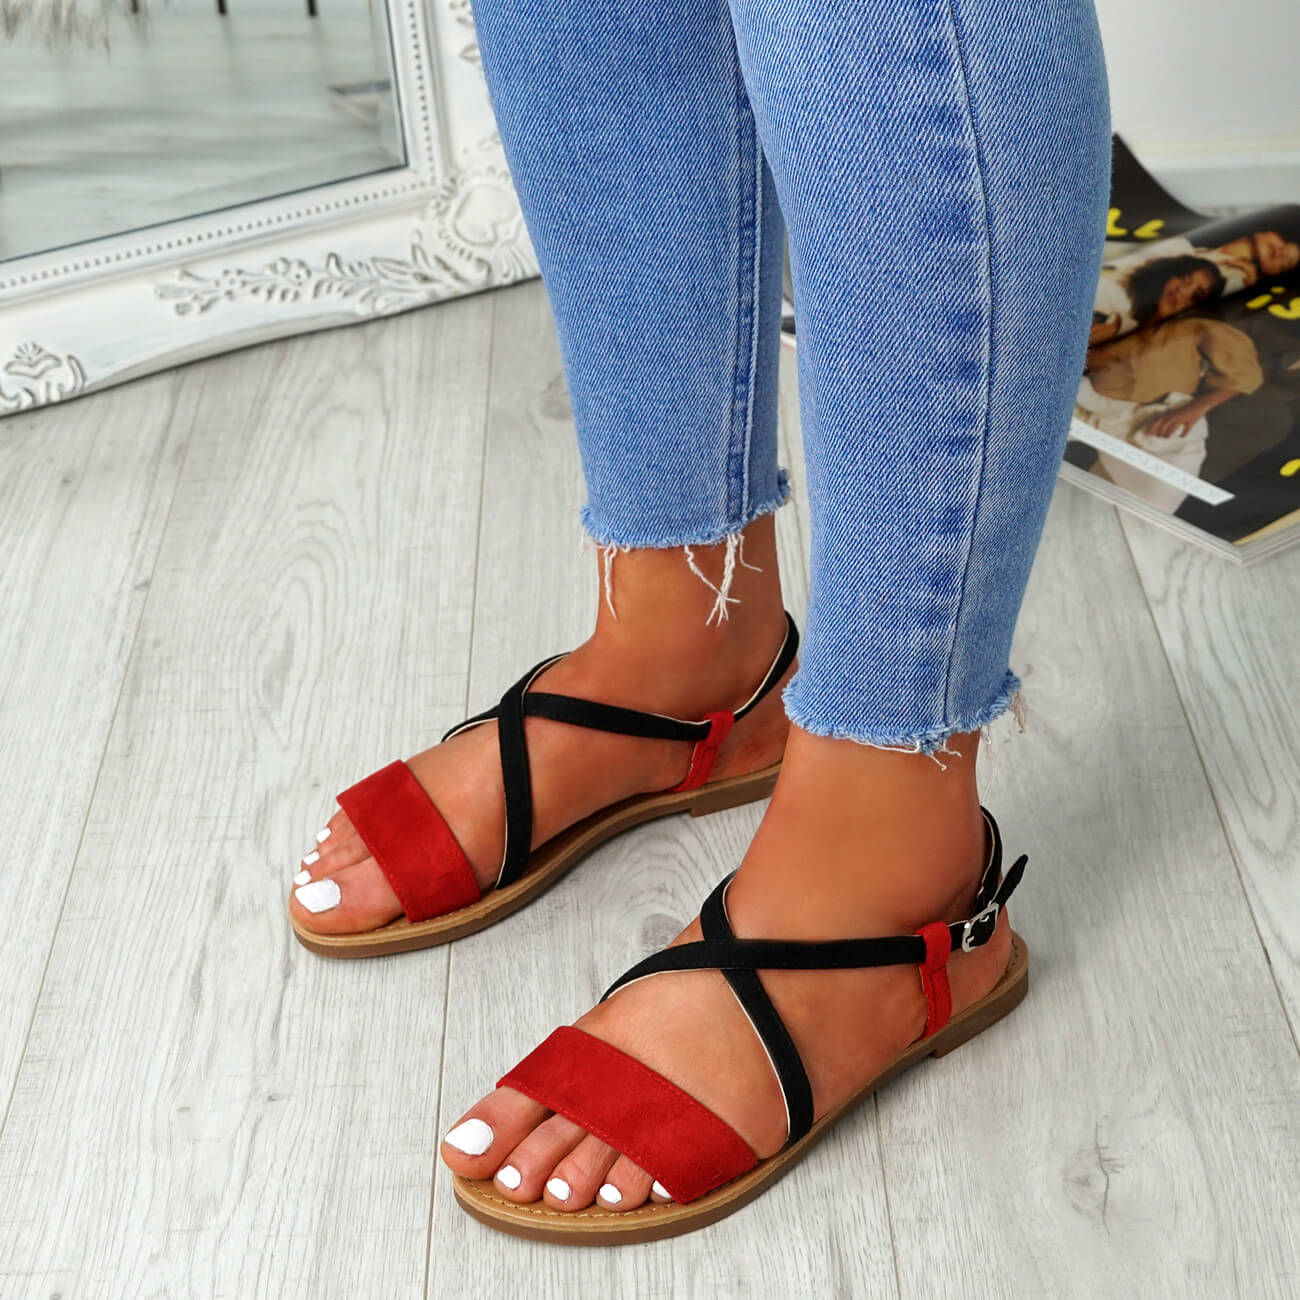 WOMENS-LADIES-ANKLE-STRAP-PEEP-TOE-FLAT-SANDALS-COMFY-SUMMER-SHOES-SIZE thumbnail 18